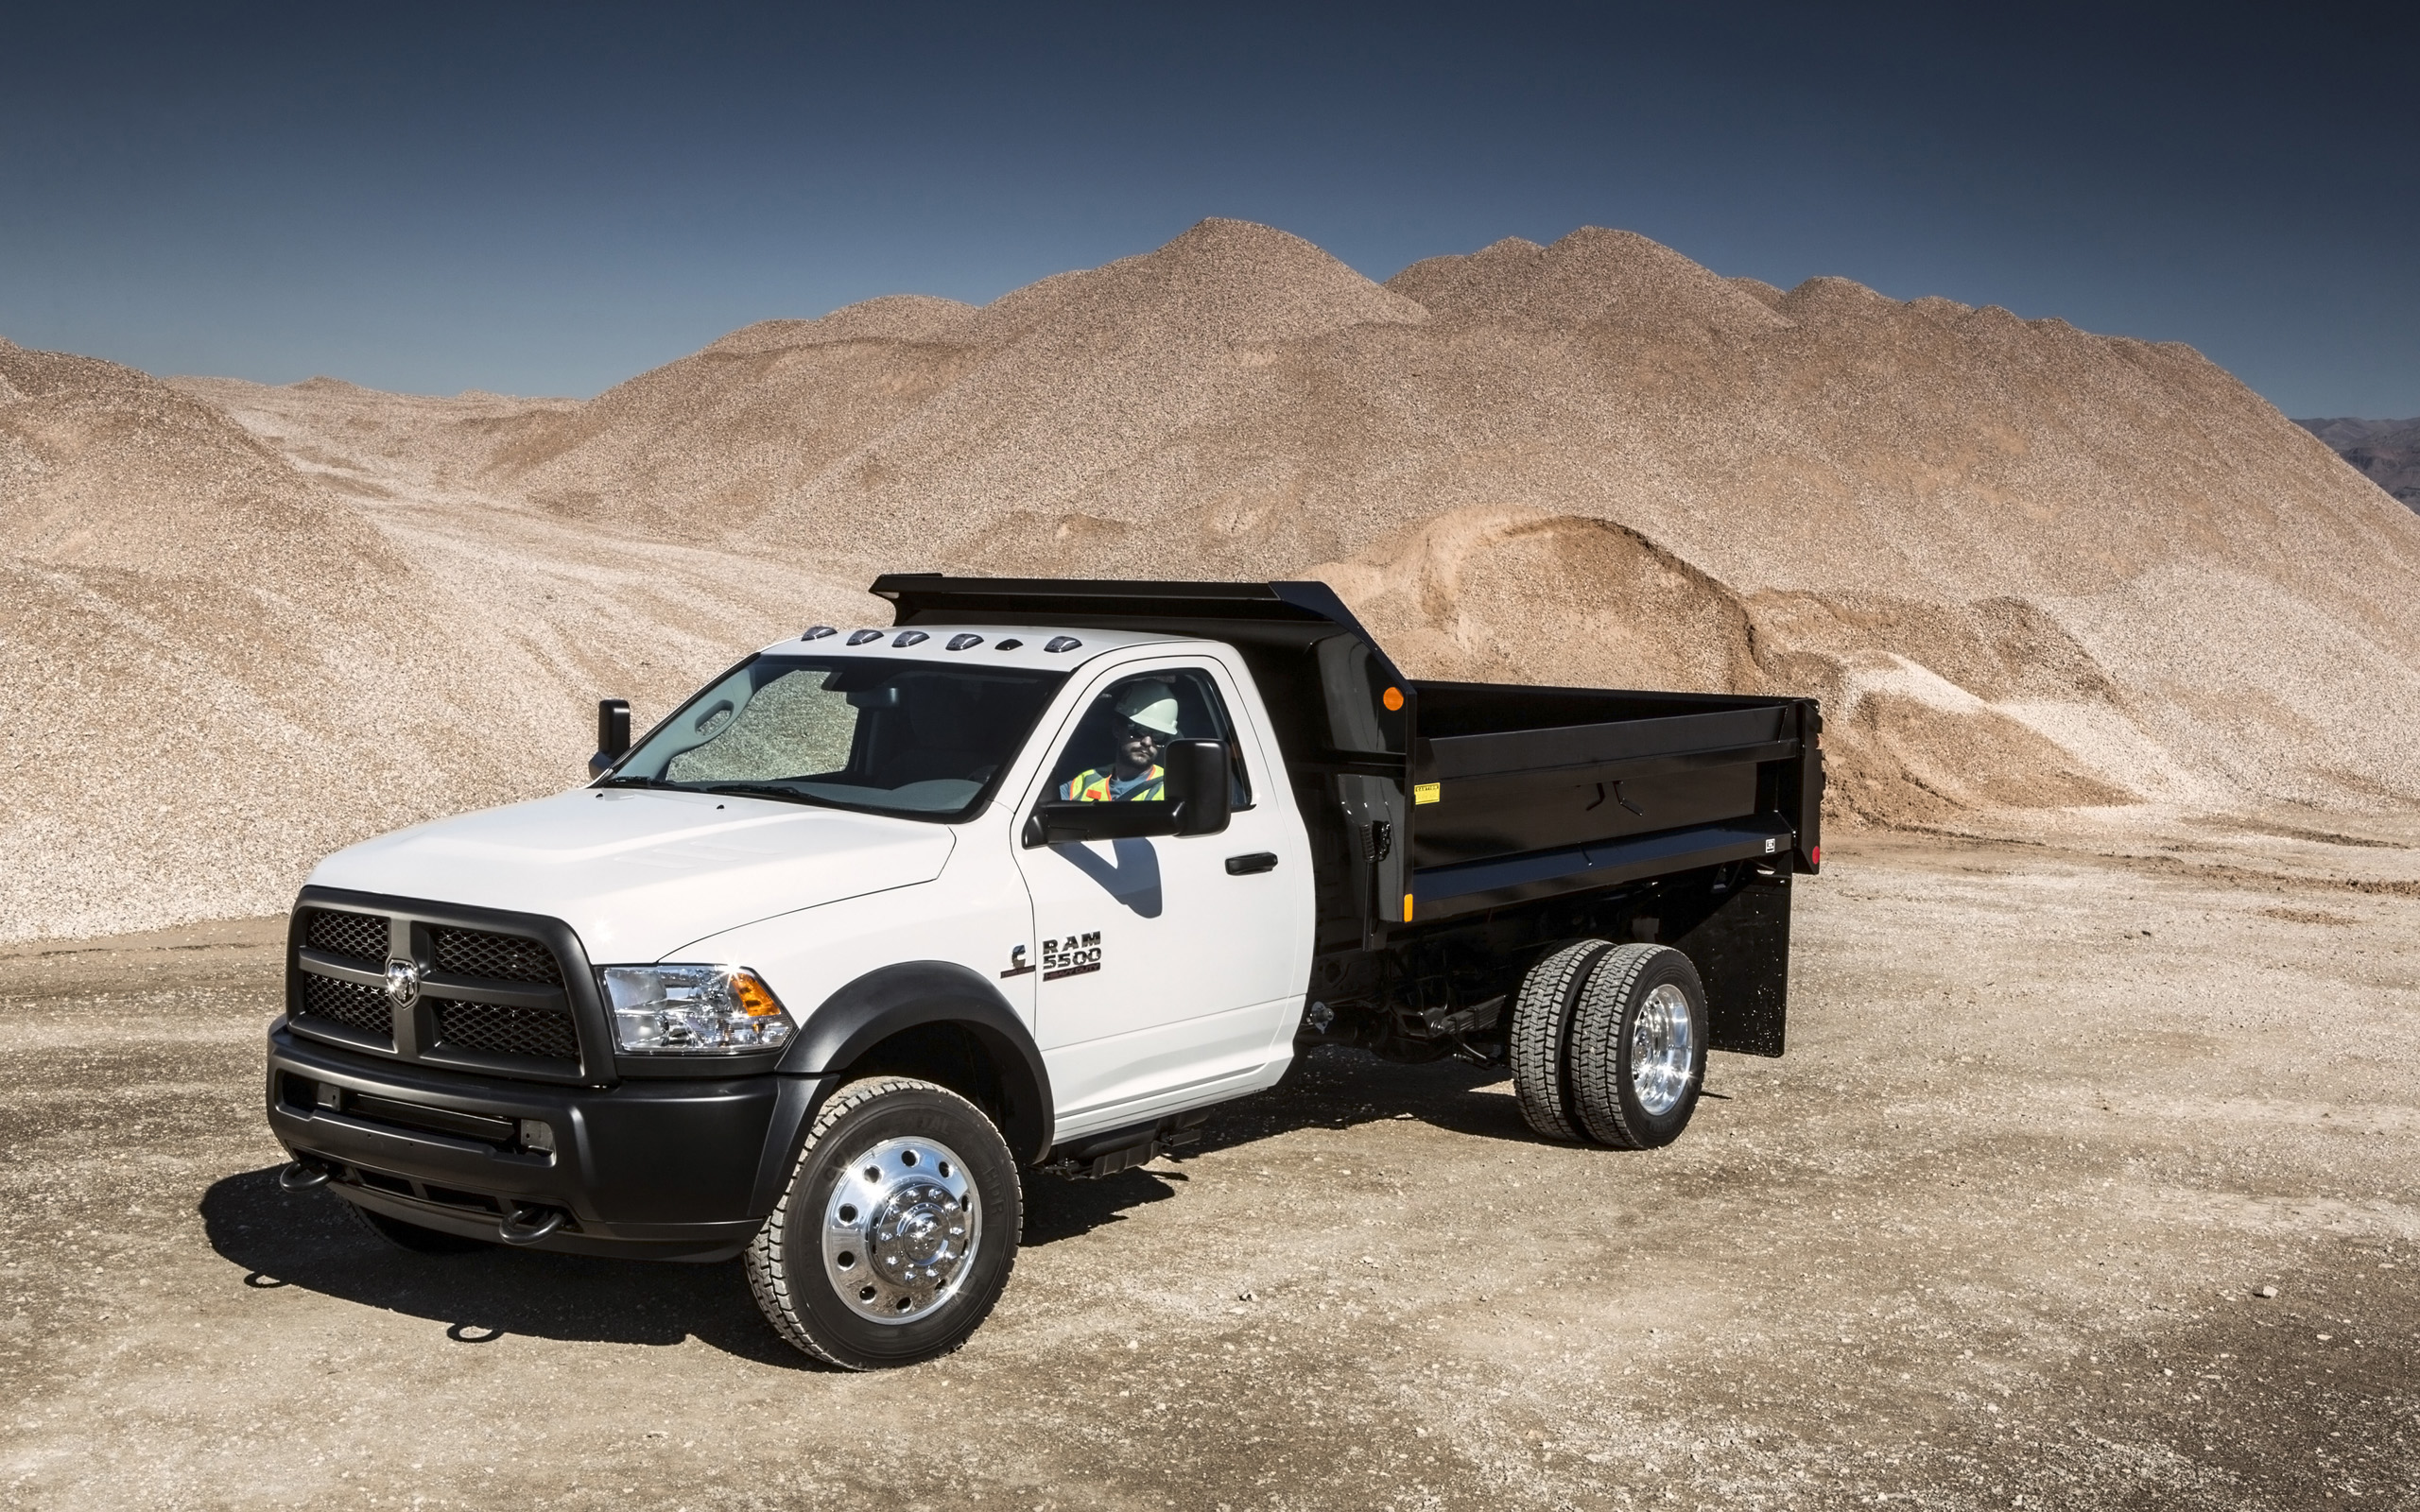 2014 dodge ram 5500 4x4 chassis cab rw wallpaper for 5500 3